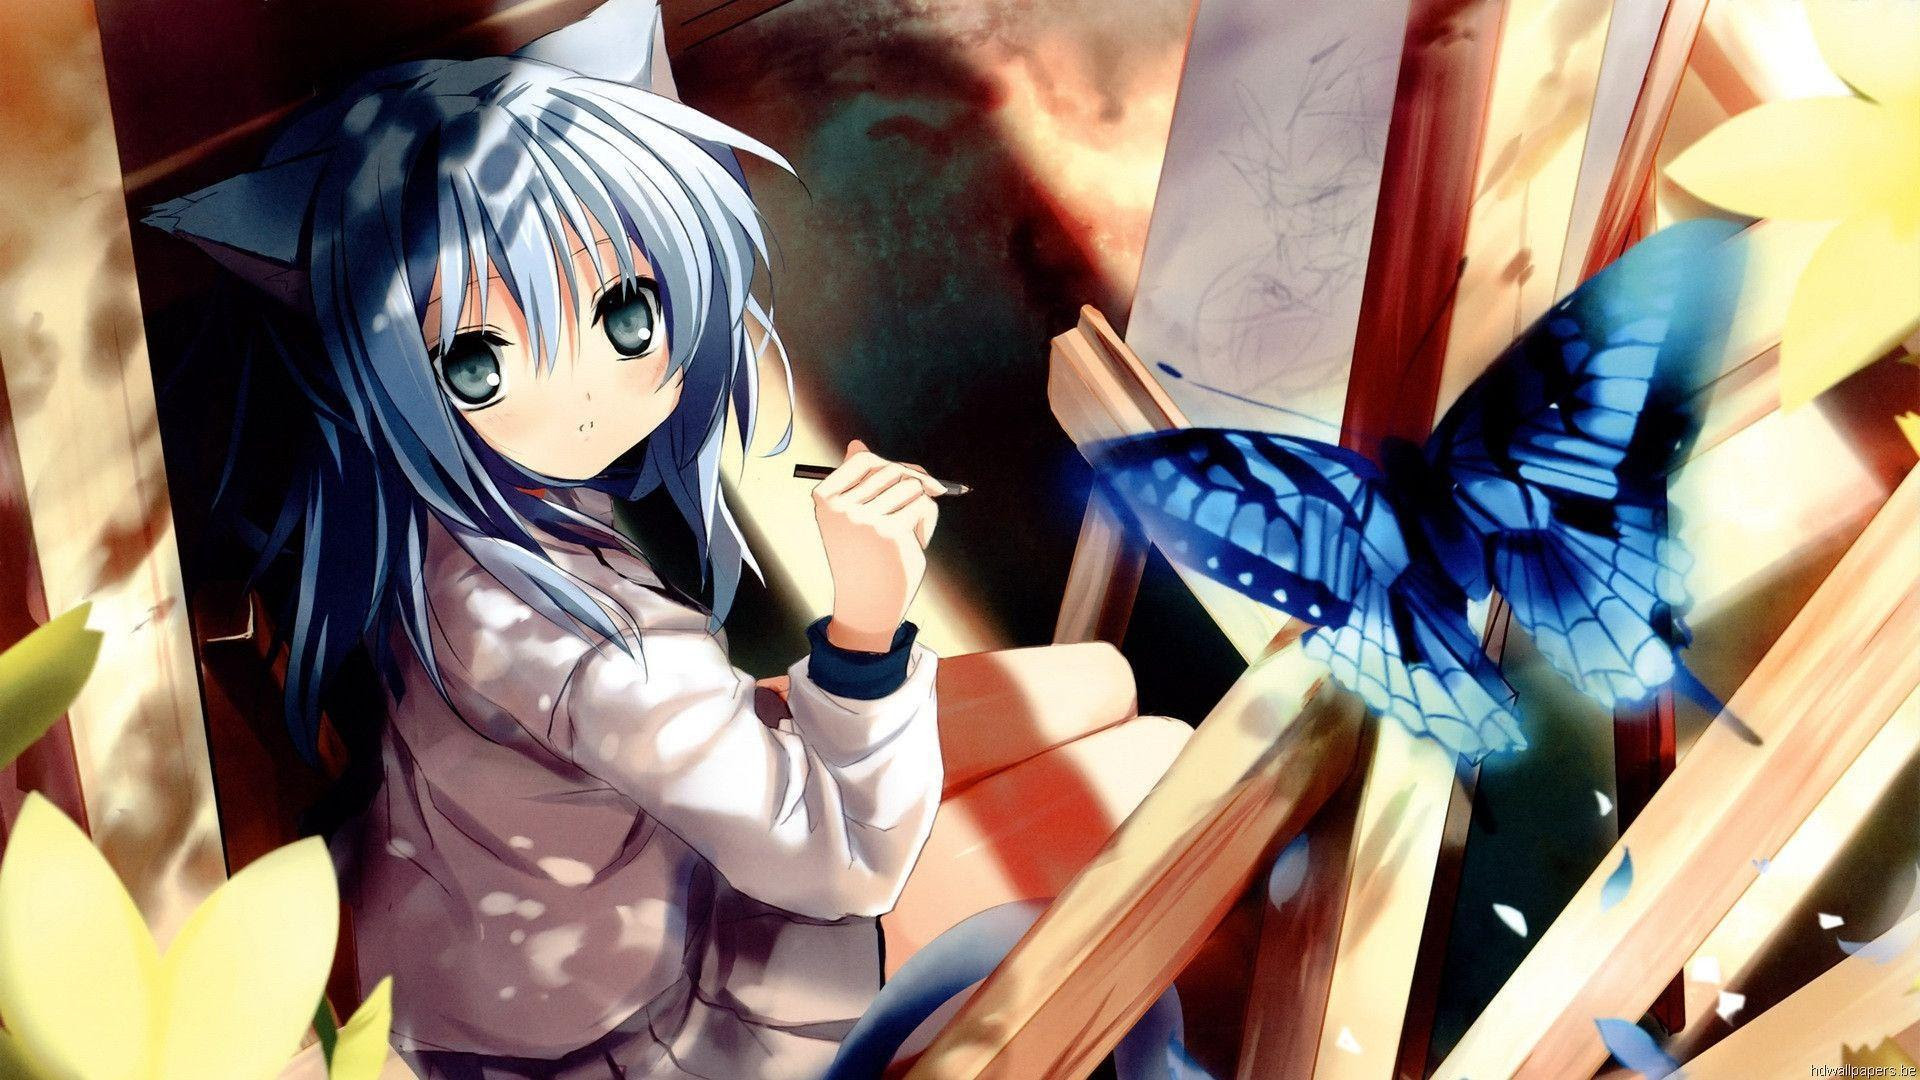 Wallpapers Anime Cute - Wallpaper Cave